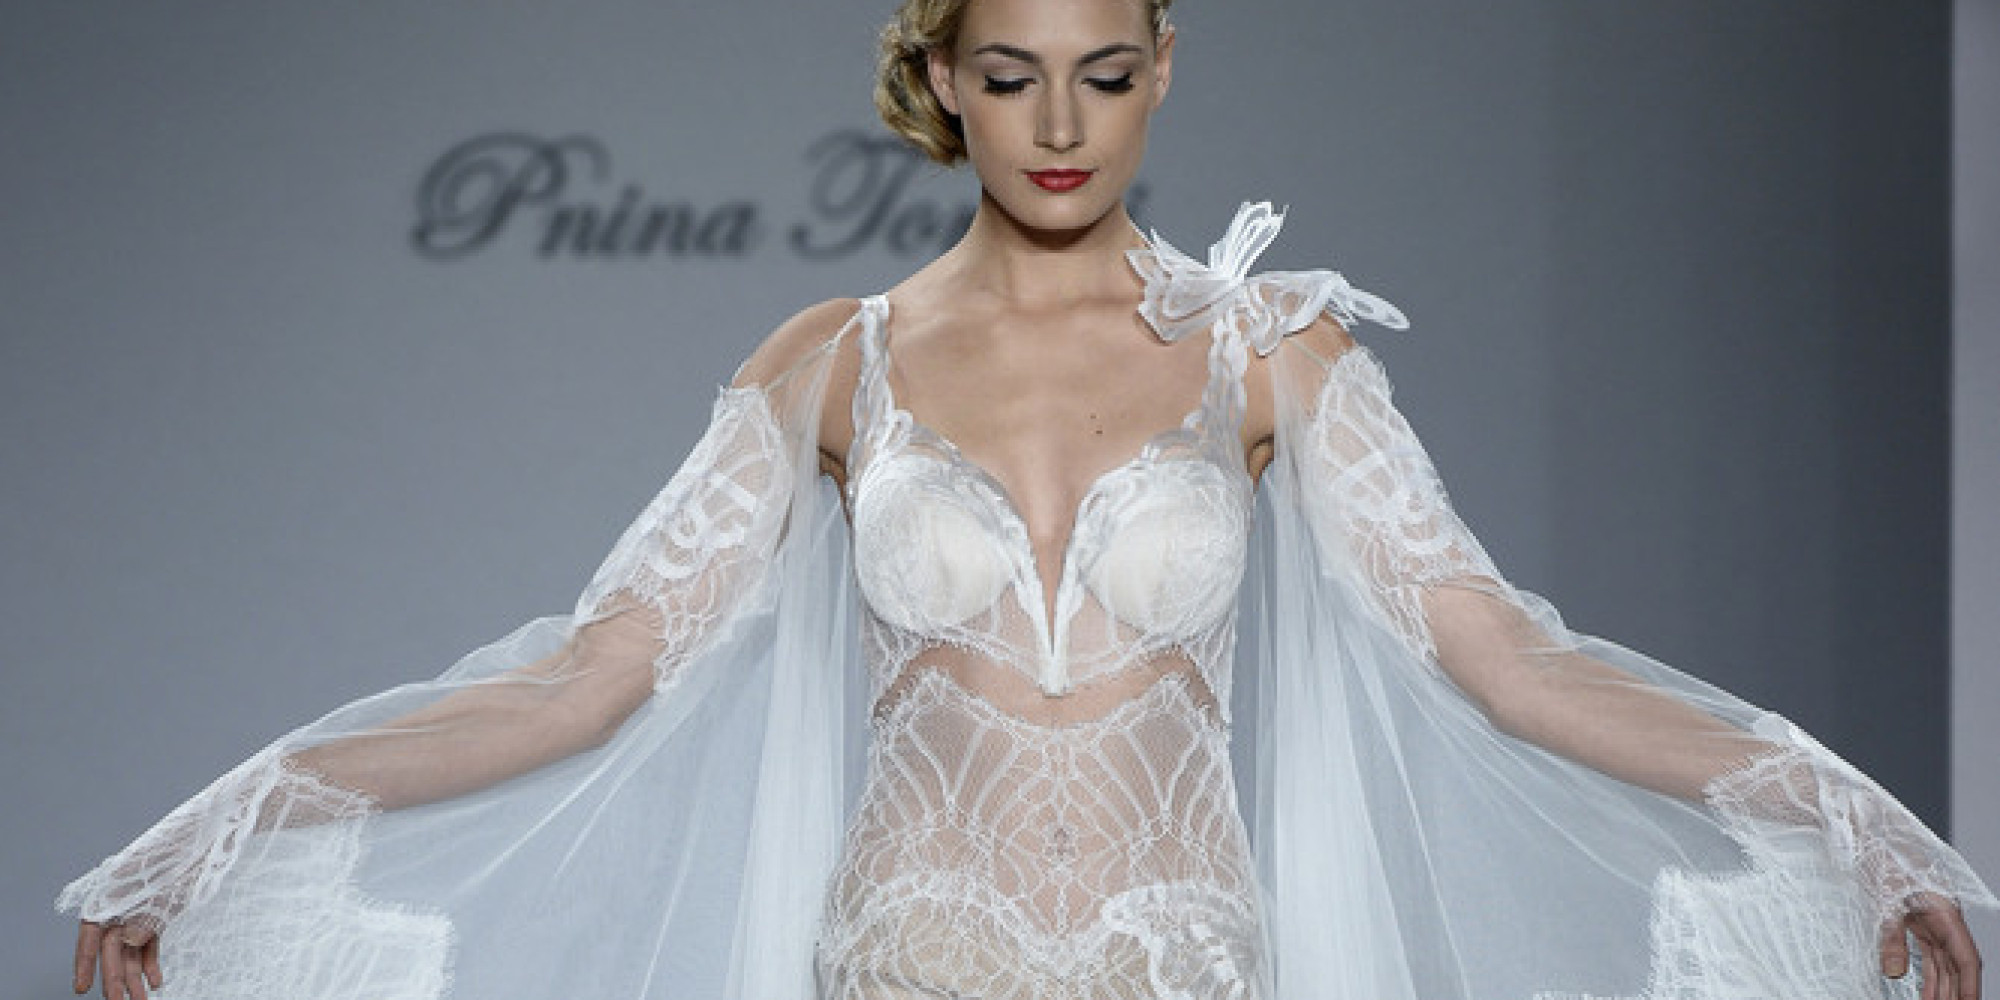 These Wedding Dresses Are For Brides Who Dare To Go Bare